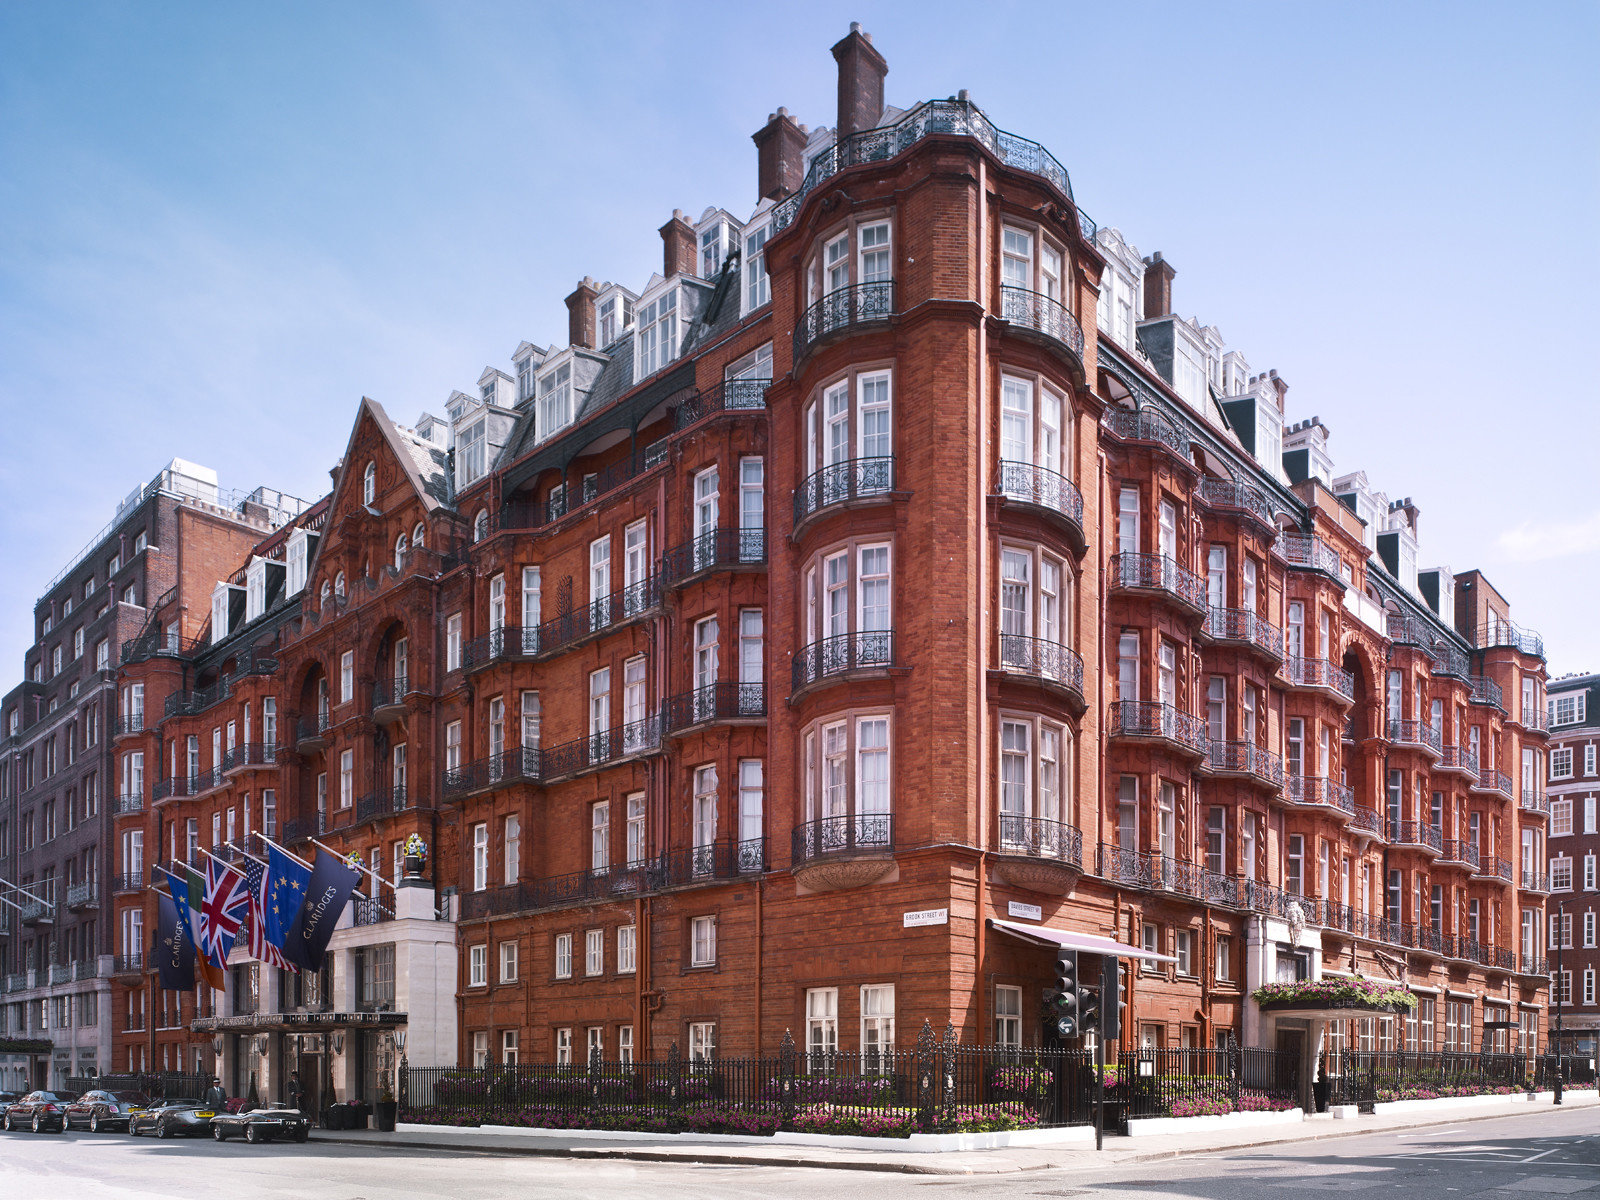 Hotels London Luxury Travel outdoor sky street Town landmark neighbourhood City urban area Architecture Winter human settlement residential area tower block apartment building cityscape Downtown facade plaza waterway tall government building